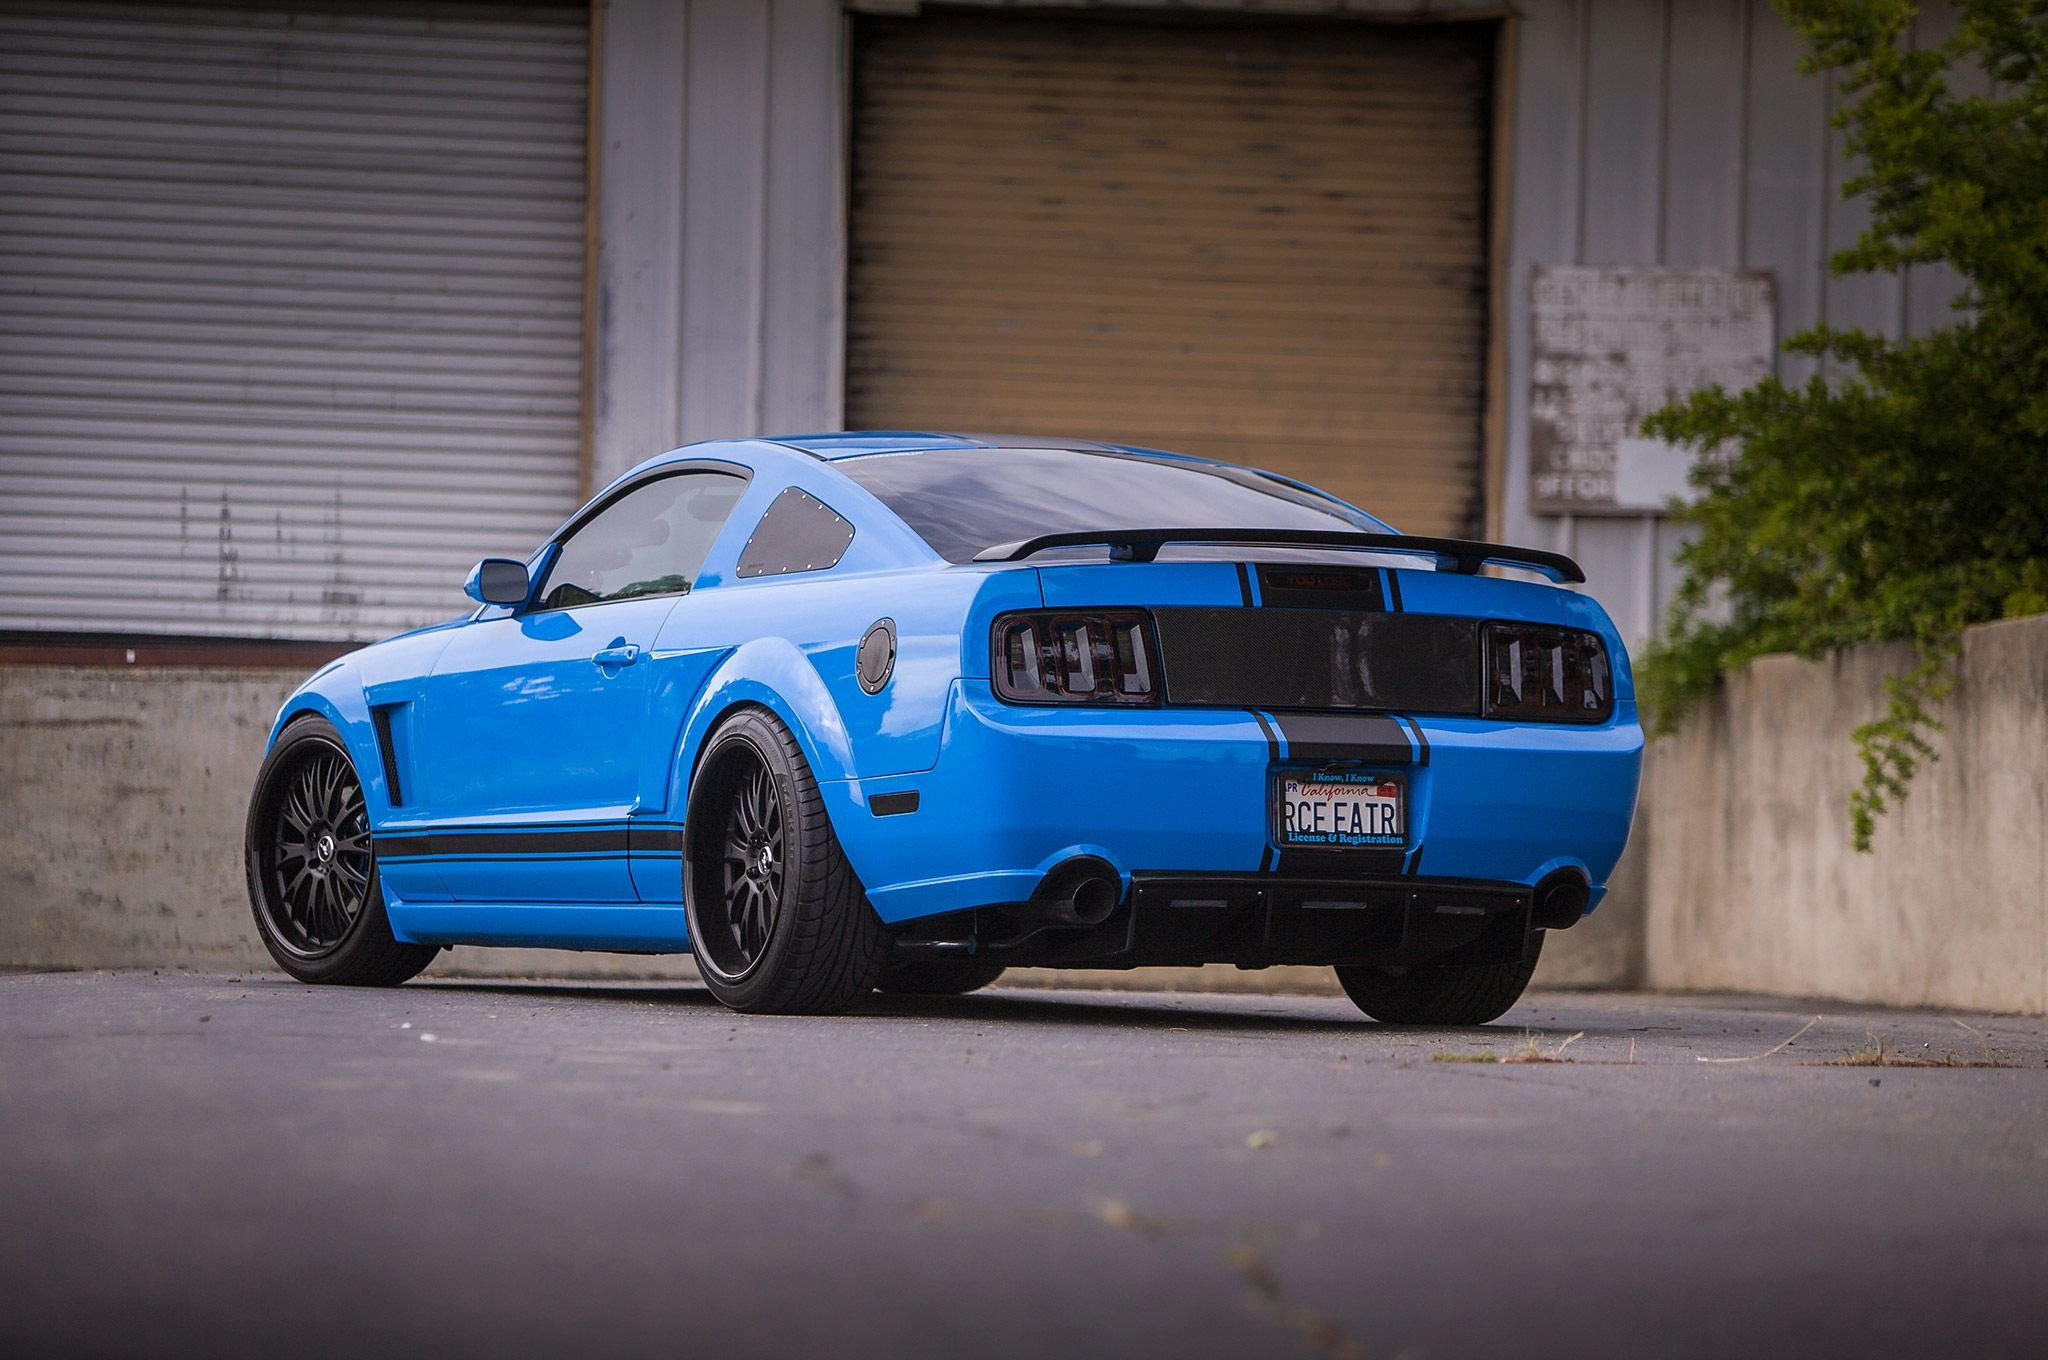 2005 ford mustang shelby gt super street pro touring supercar usa 33 wallpaper 2048x1360